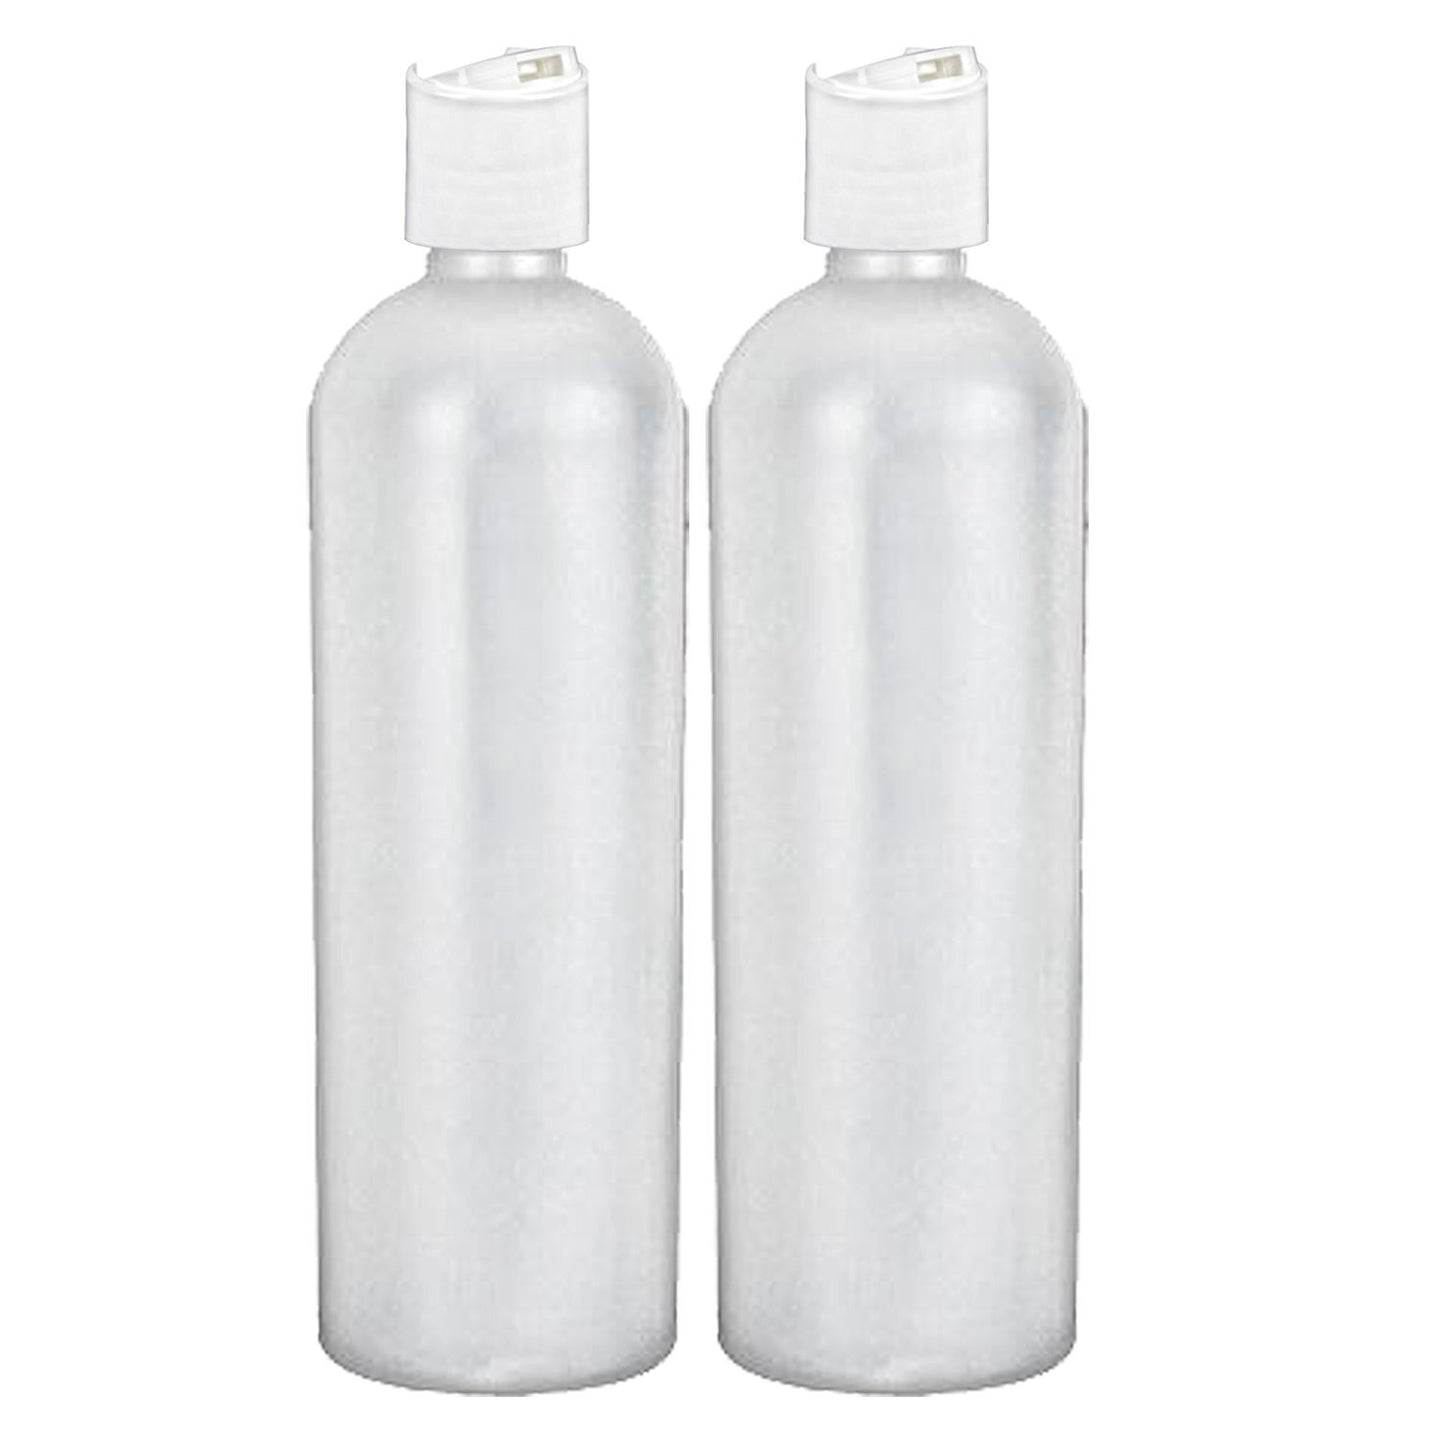 MoYo Natural Labs 16 oz Travel Containers, Empty Shampoo Bottles with Disc Tops, BPA Free HDPE Plastic Squeezable Toiletry/Cosmetics Bottles (2 pack, Translucent White)